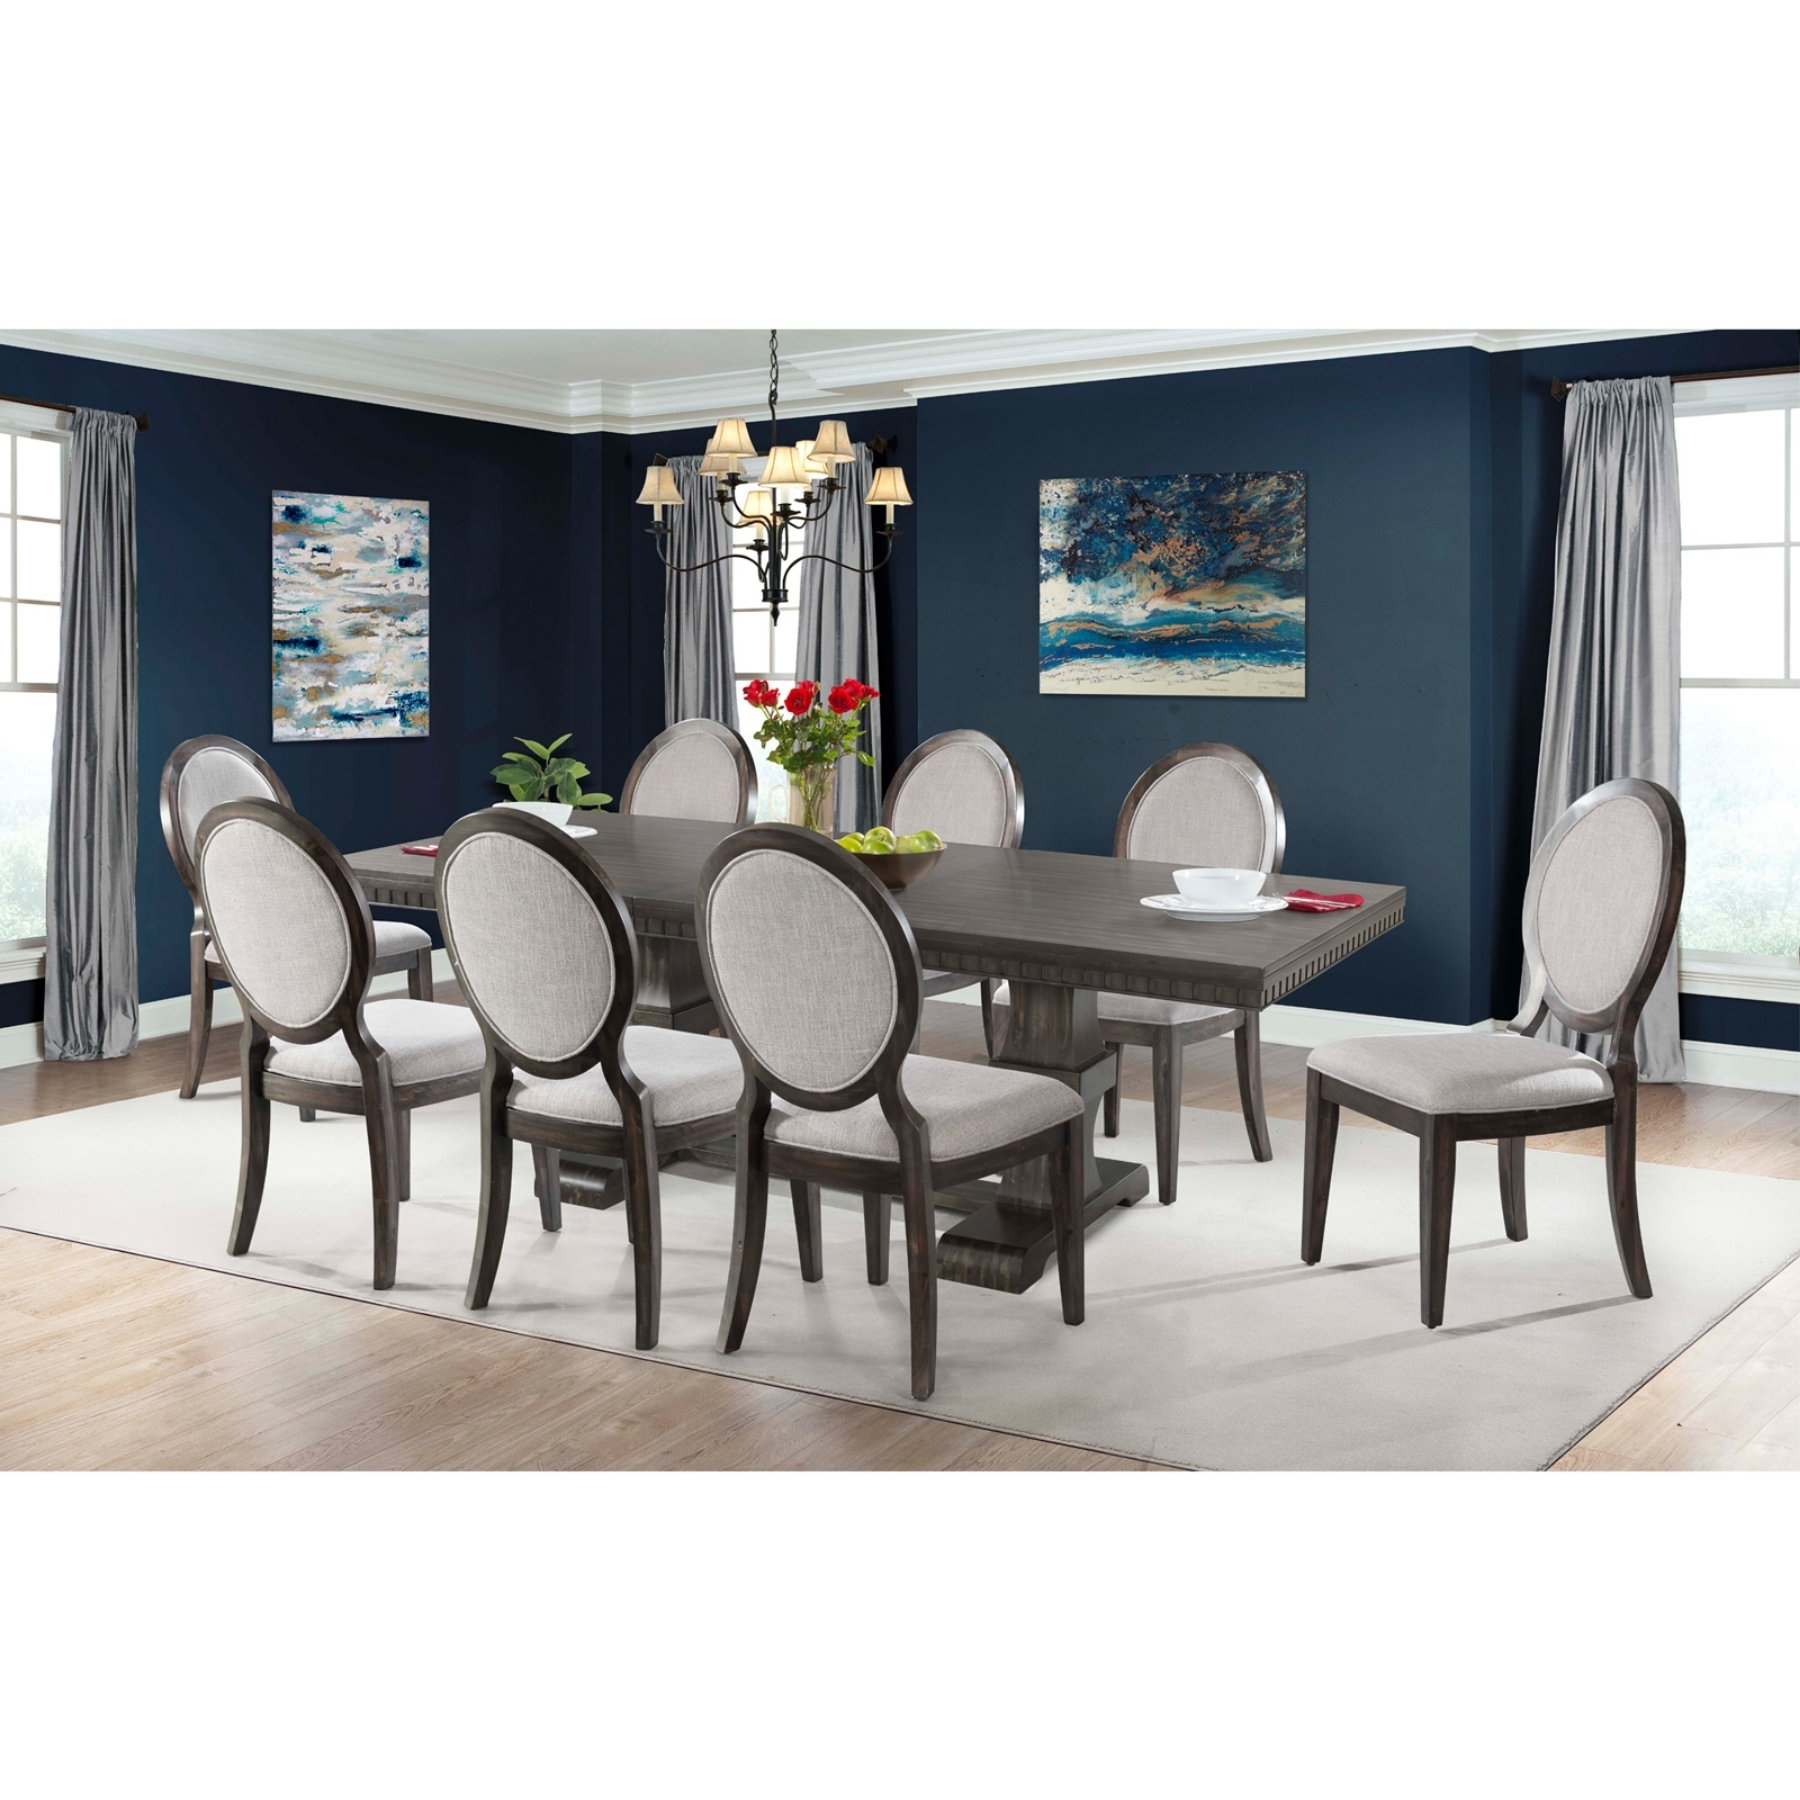 Candice Ii 7 Piece Extension Rectangular Dining Sets With Slat Back Side Chairs For Current Picket House Furnishings Steele 9 Piece Extension Dining Table Set (View 22 of 25)